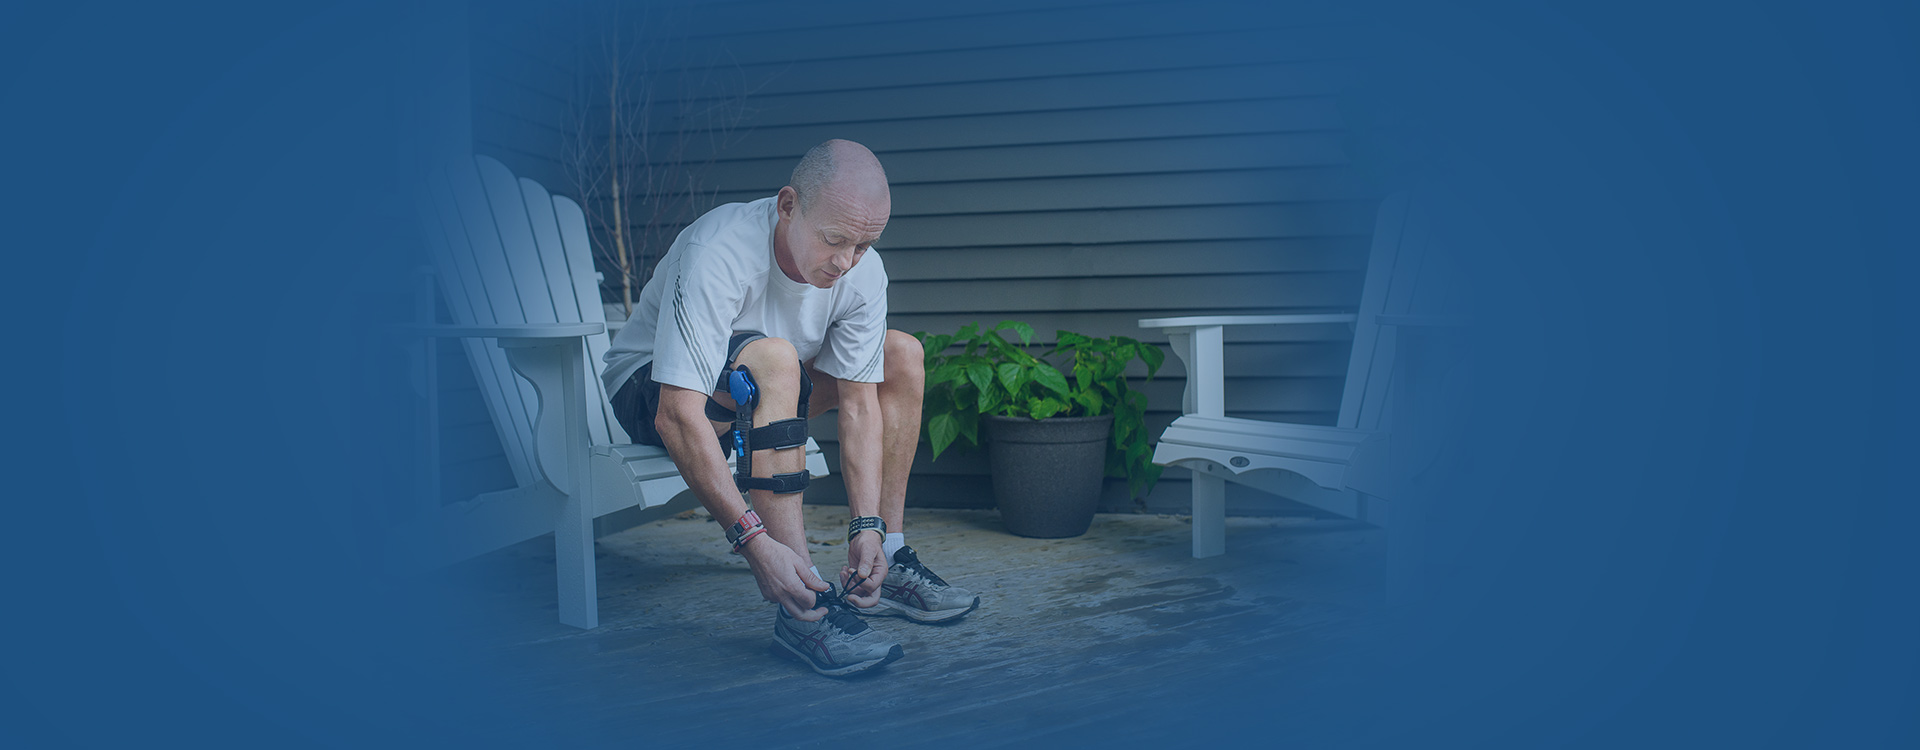 bdccfe808d GUIDE TO MANAGING YOUR SEVERE KNEE ARTHRITIS WITHOUT SURGERY & PAINKILLERS